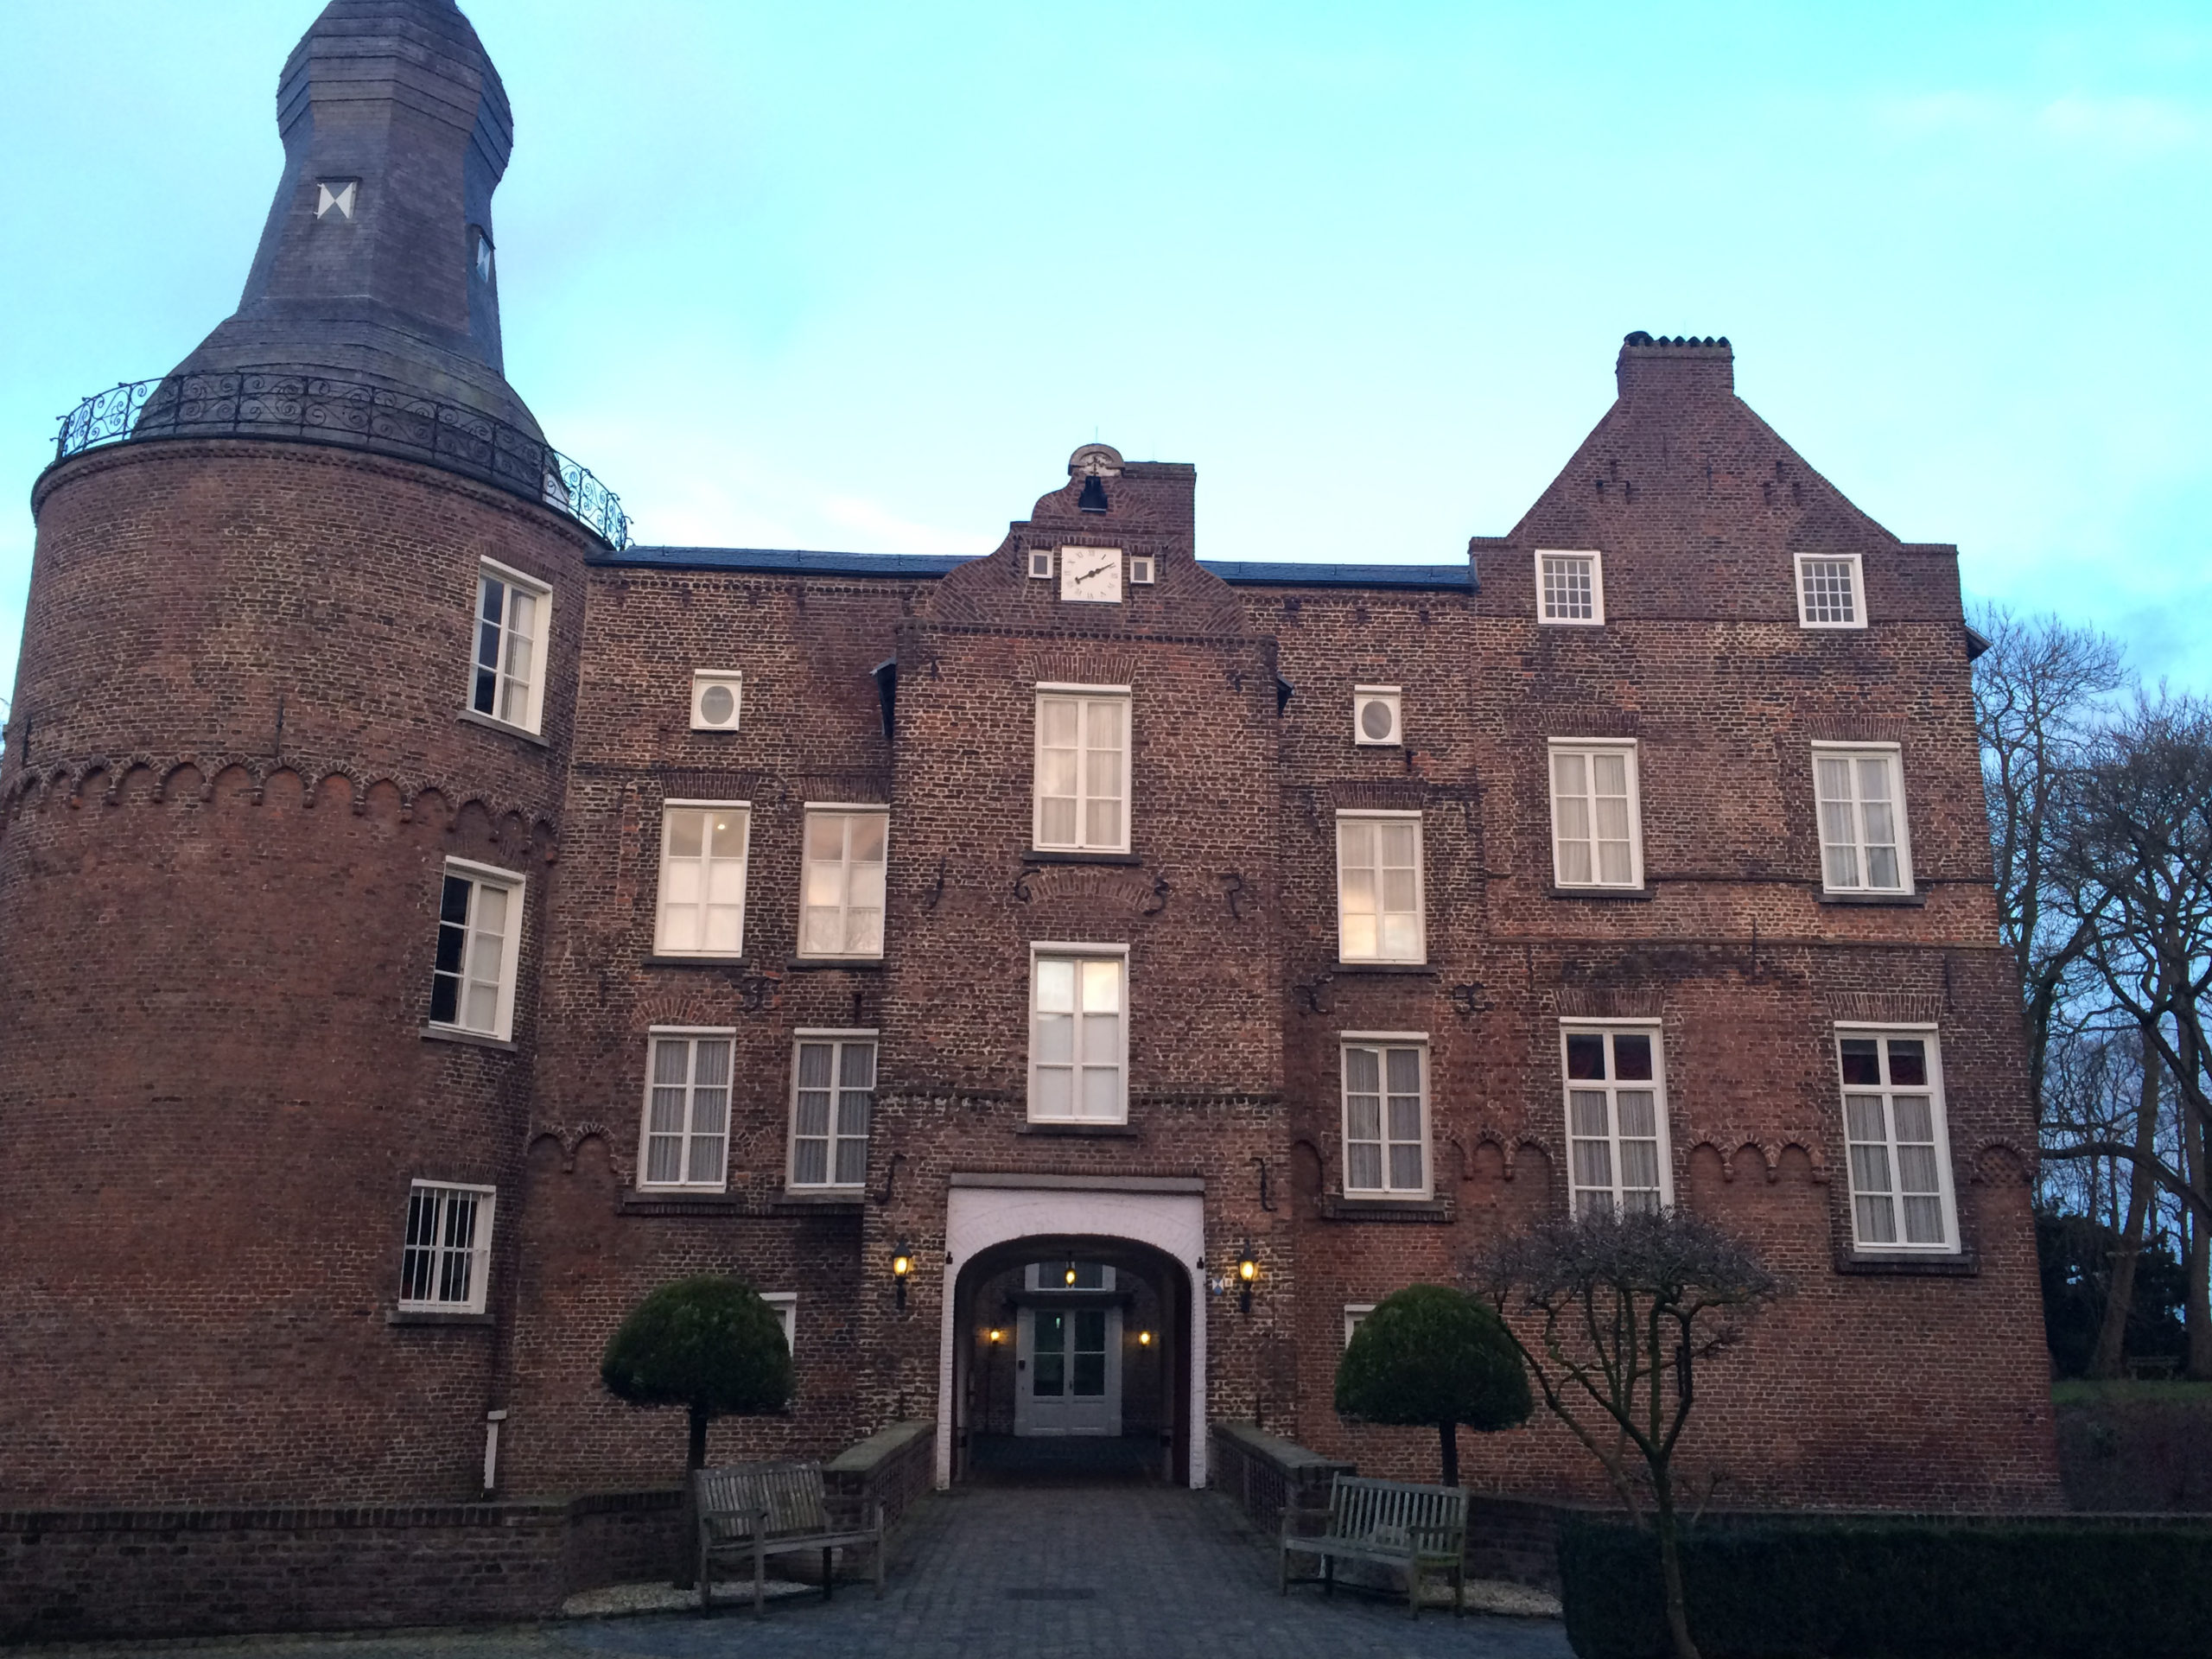 a photo of Kasteel Well in the Netherlands